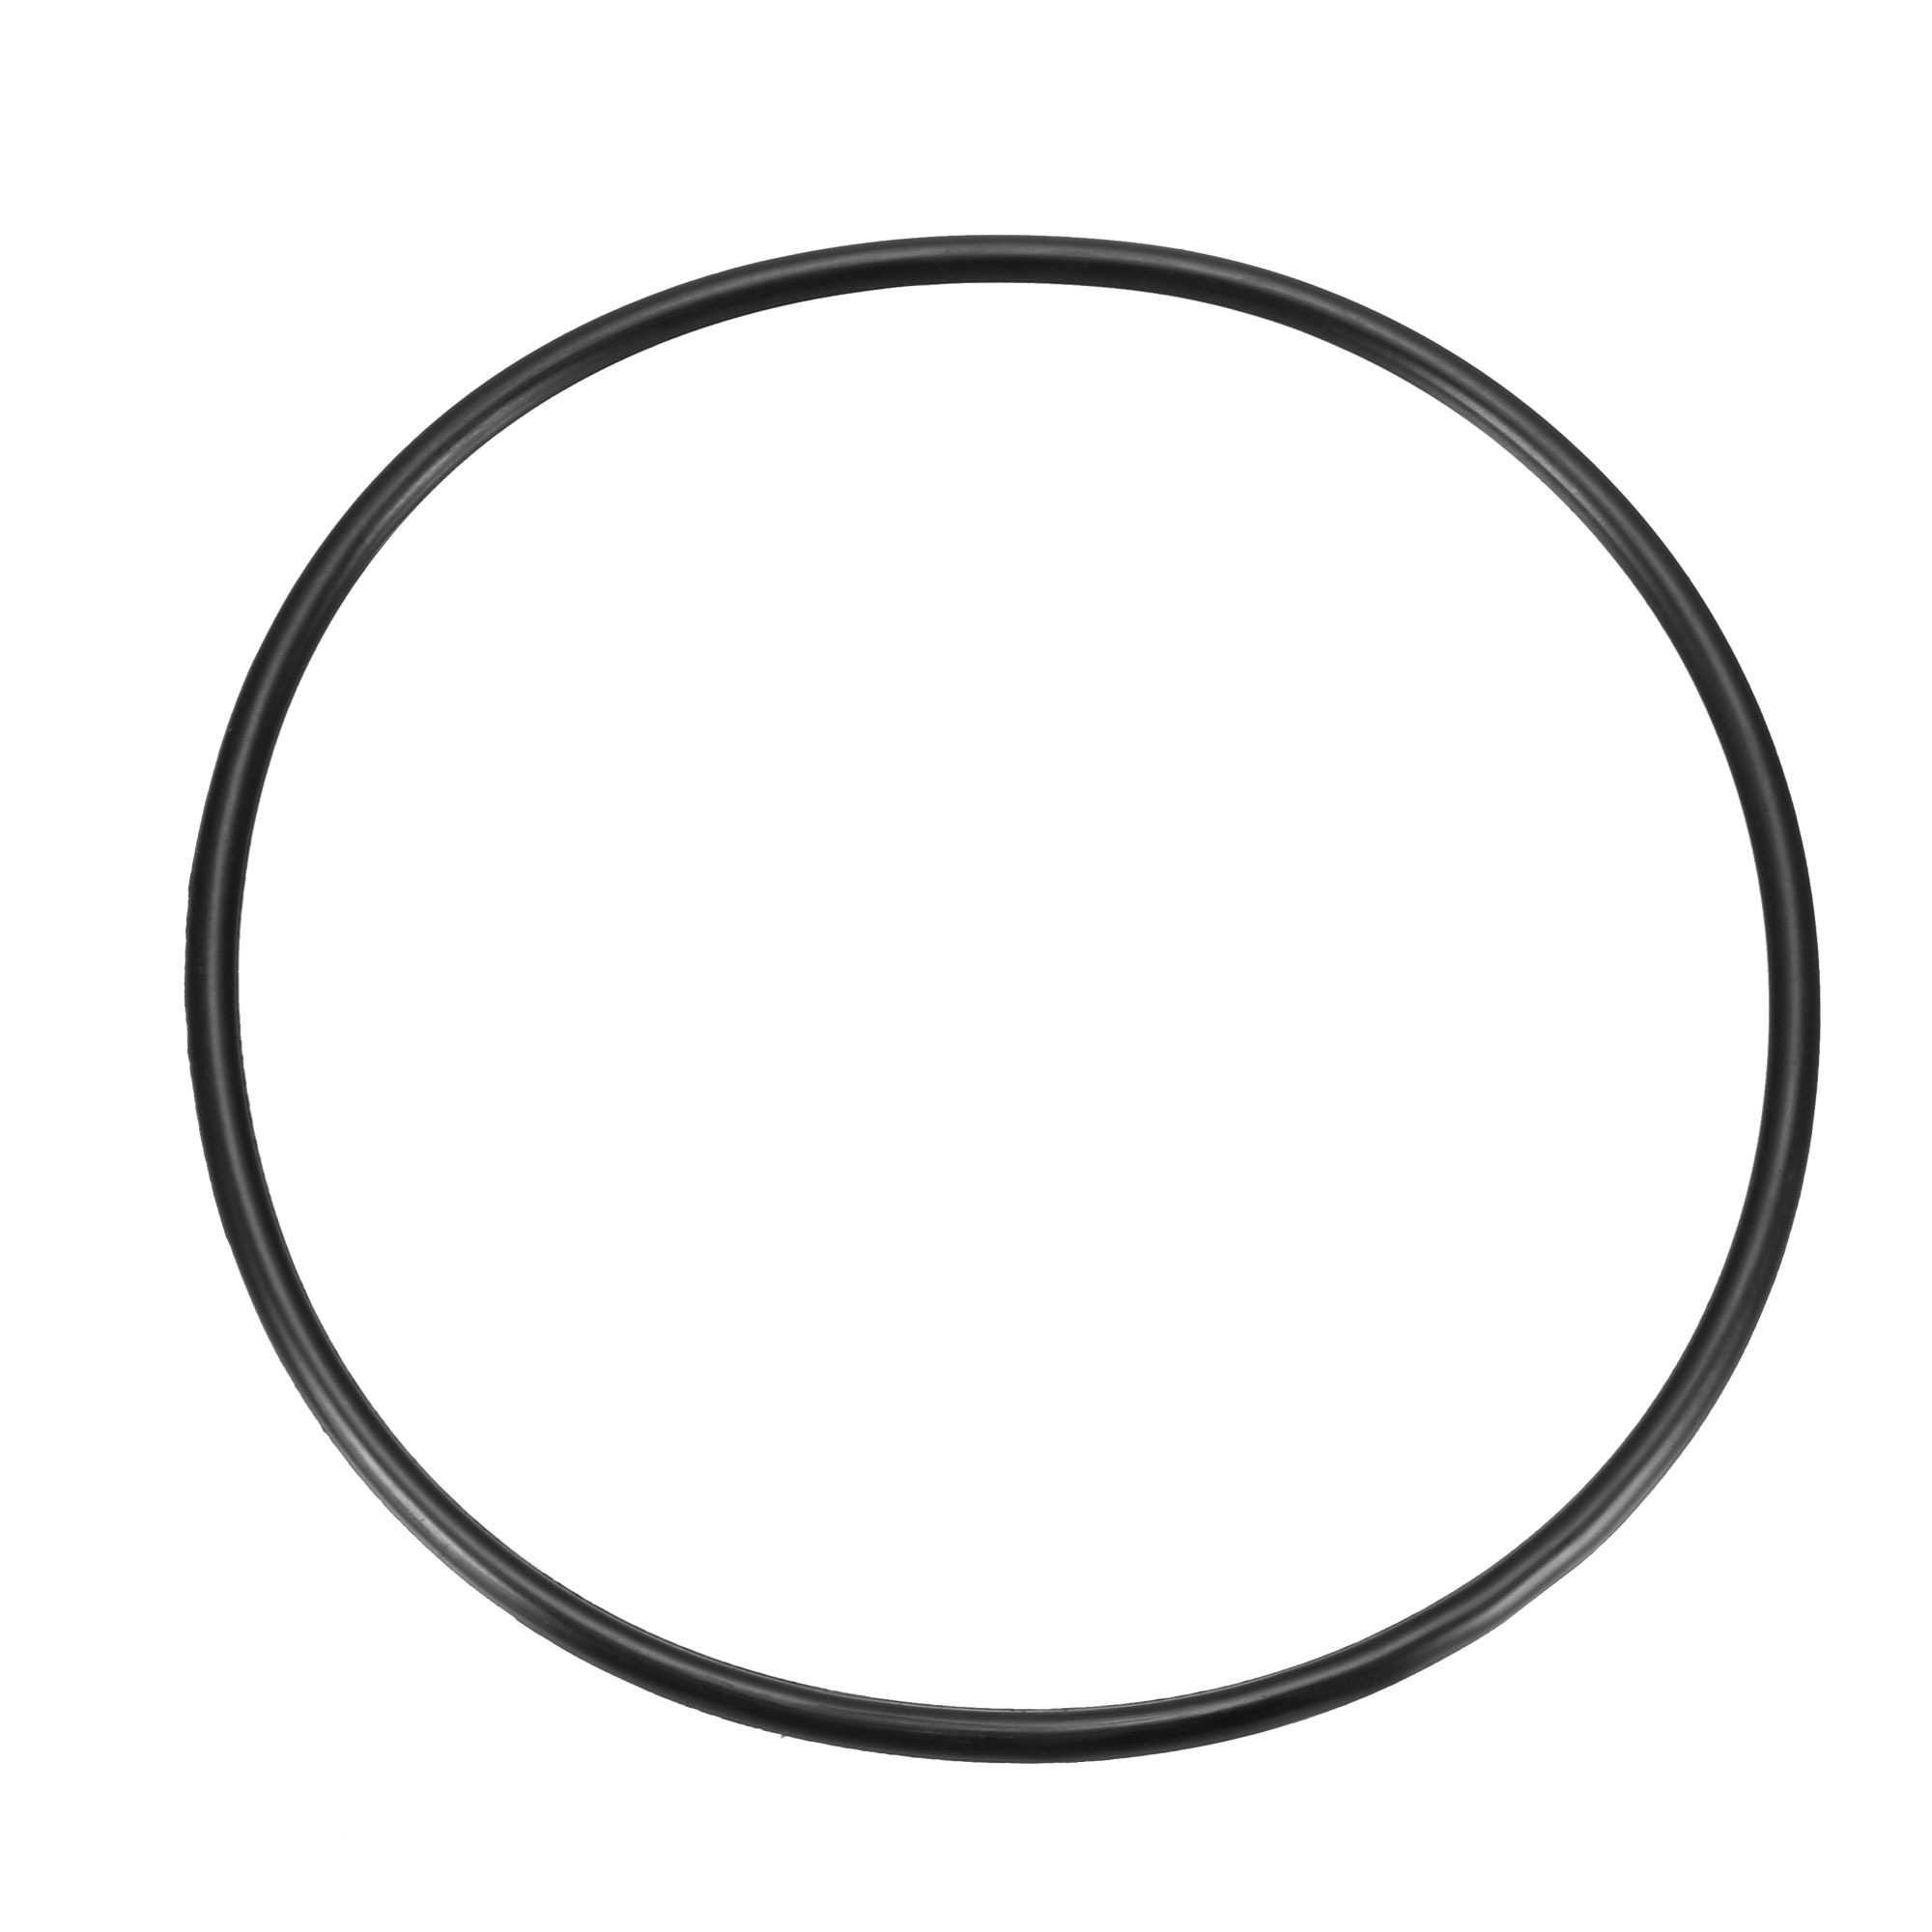 Black 180mm OD 5.7mm Thickness Nitrile Rubber O-ring Oil Seal Gasket